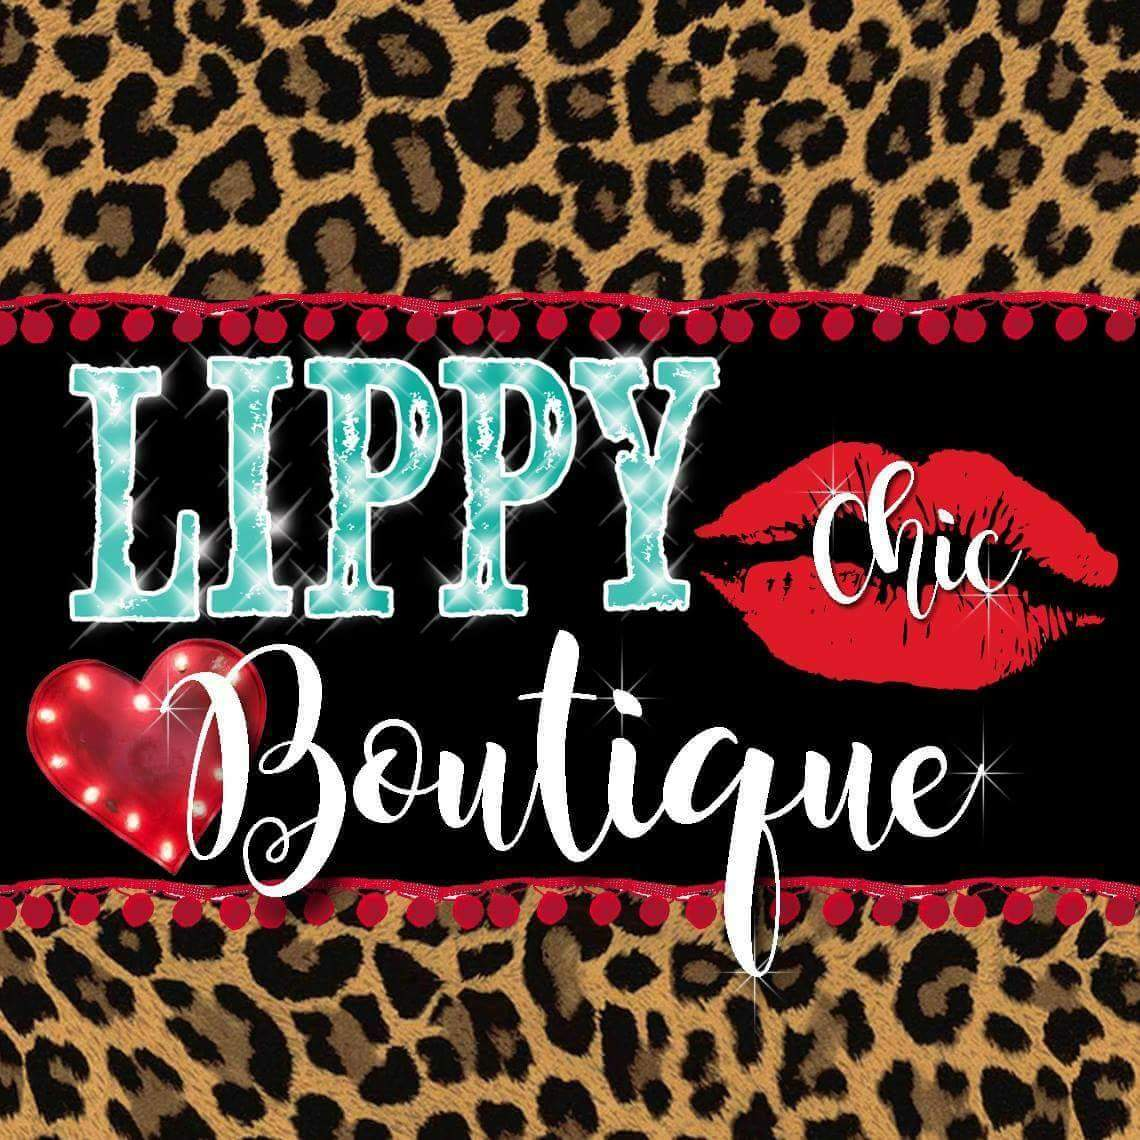 Lippy Chic Boutique